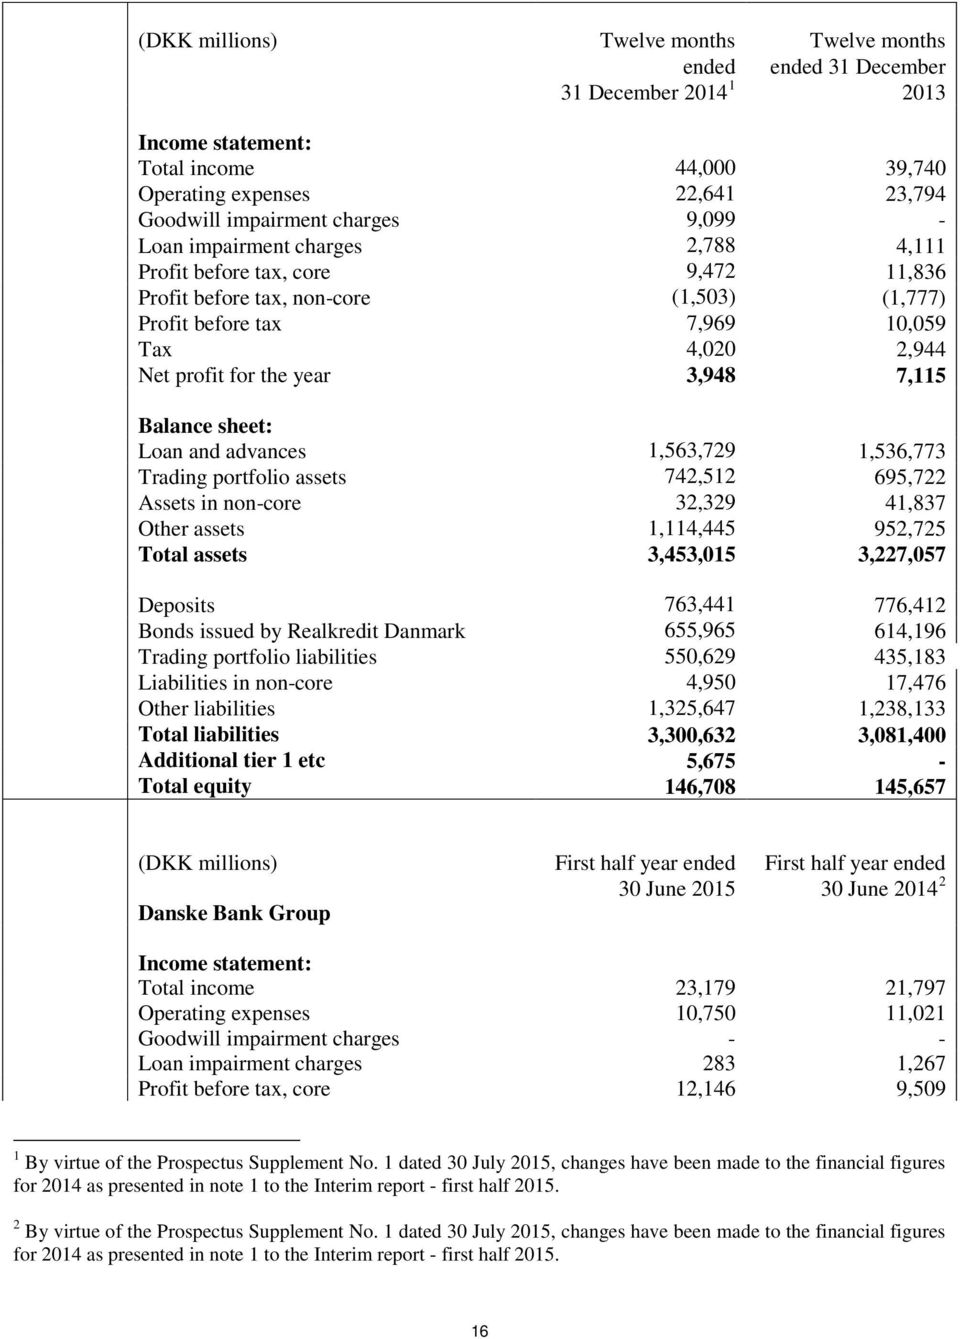 3,948 7,115 Balance sheet: Loan and advances 1,563,729 1,536,773 Trading portfolio assets 742,512 695,722 Assets in non-core 32,329 41,837 Other assets 1,114,445 952,725 Total assets 3,453,015